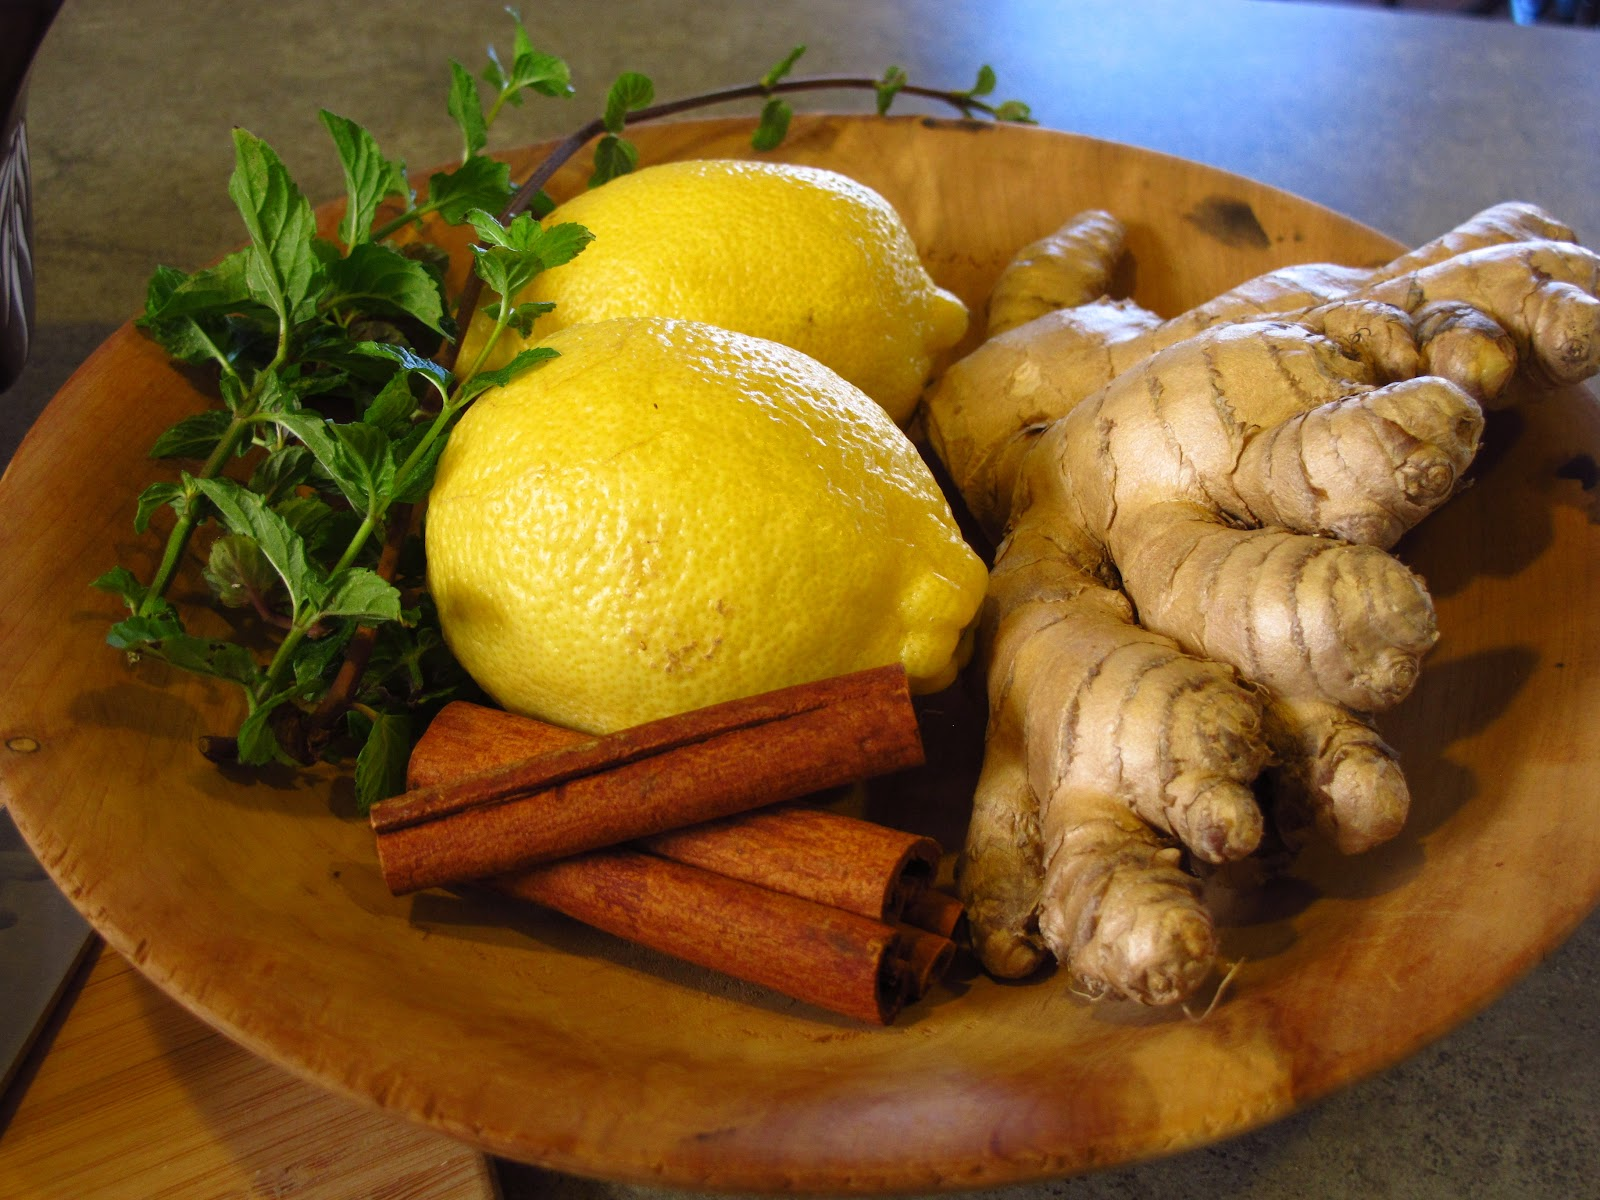 How to Calculate Your BMI - Ginger and Lemon